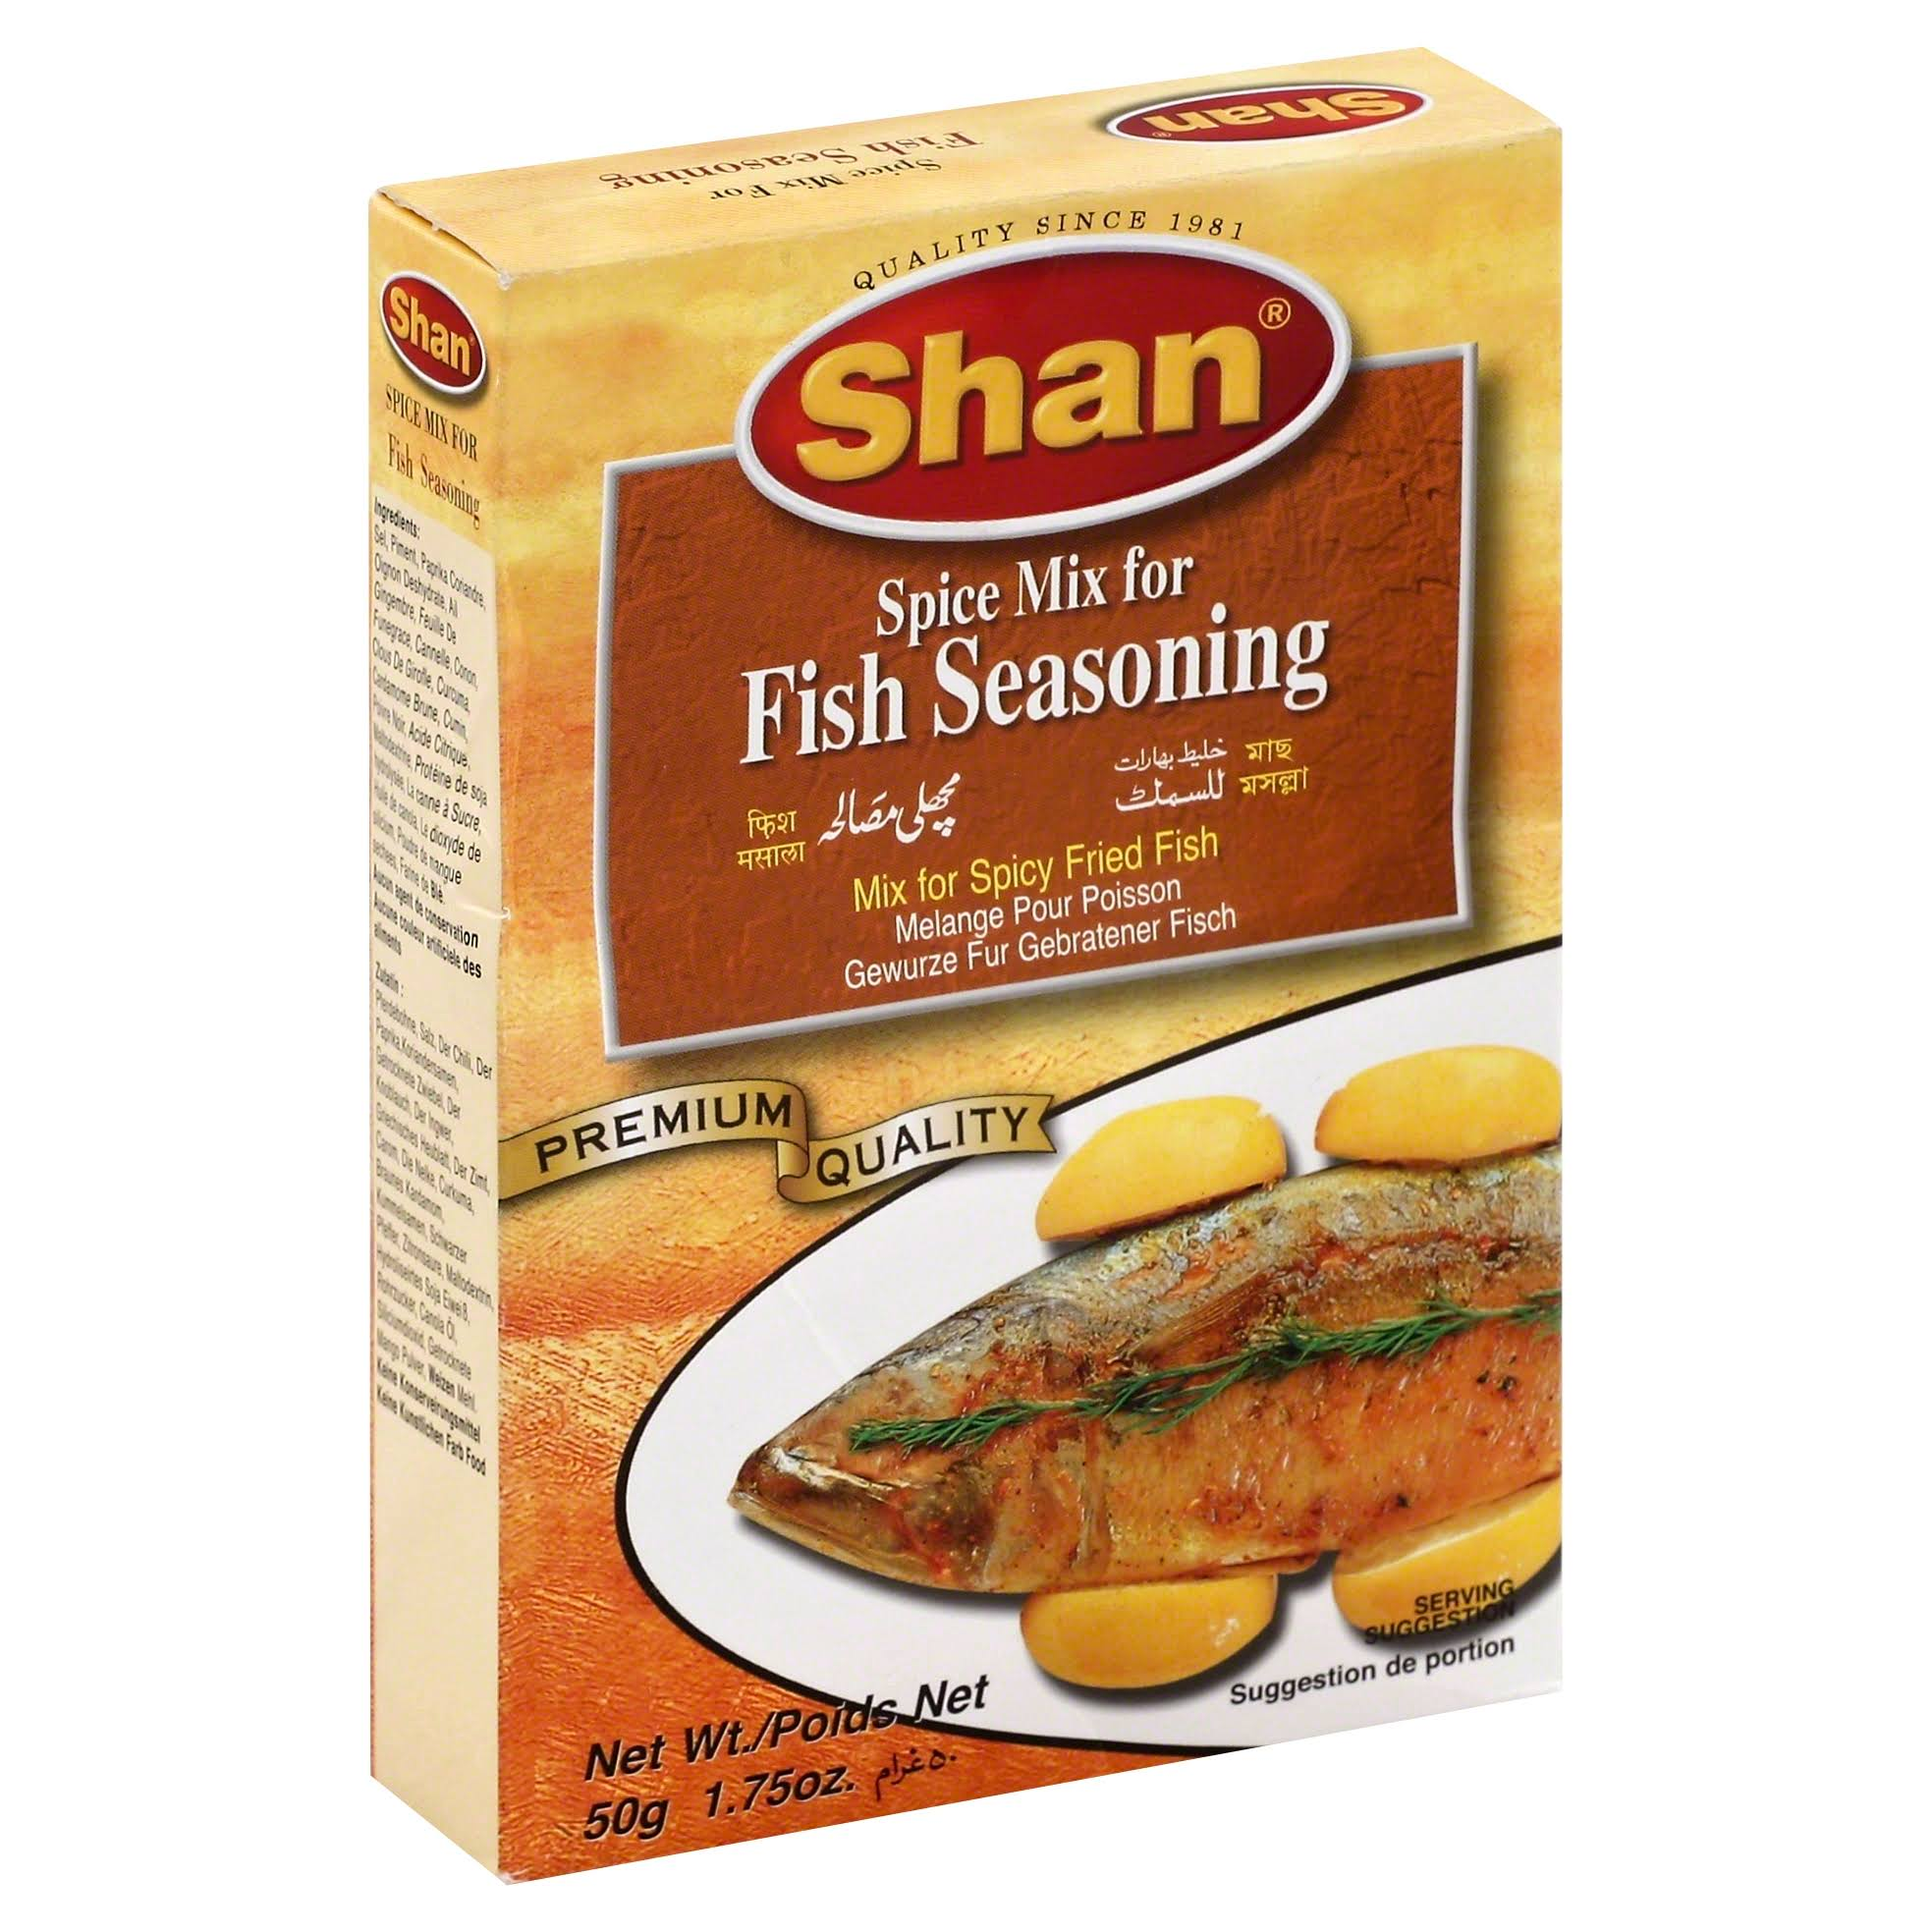 Shan Spice Mix for Fish Seasoning